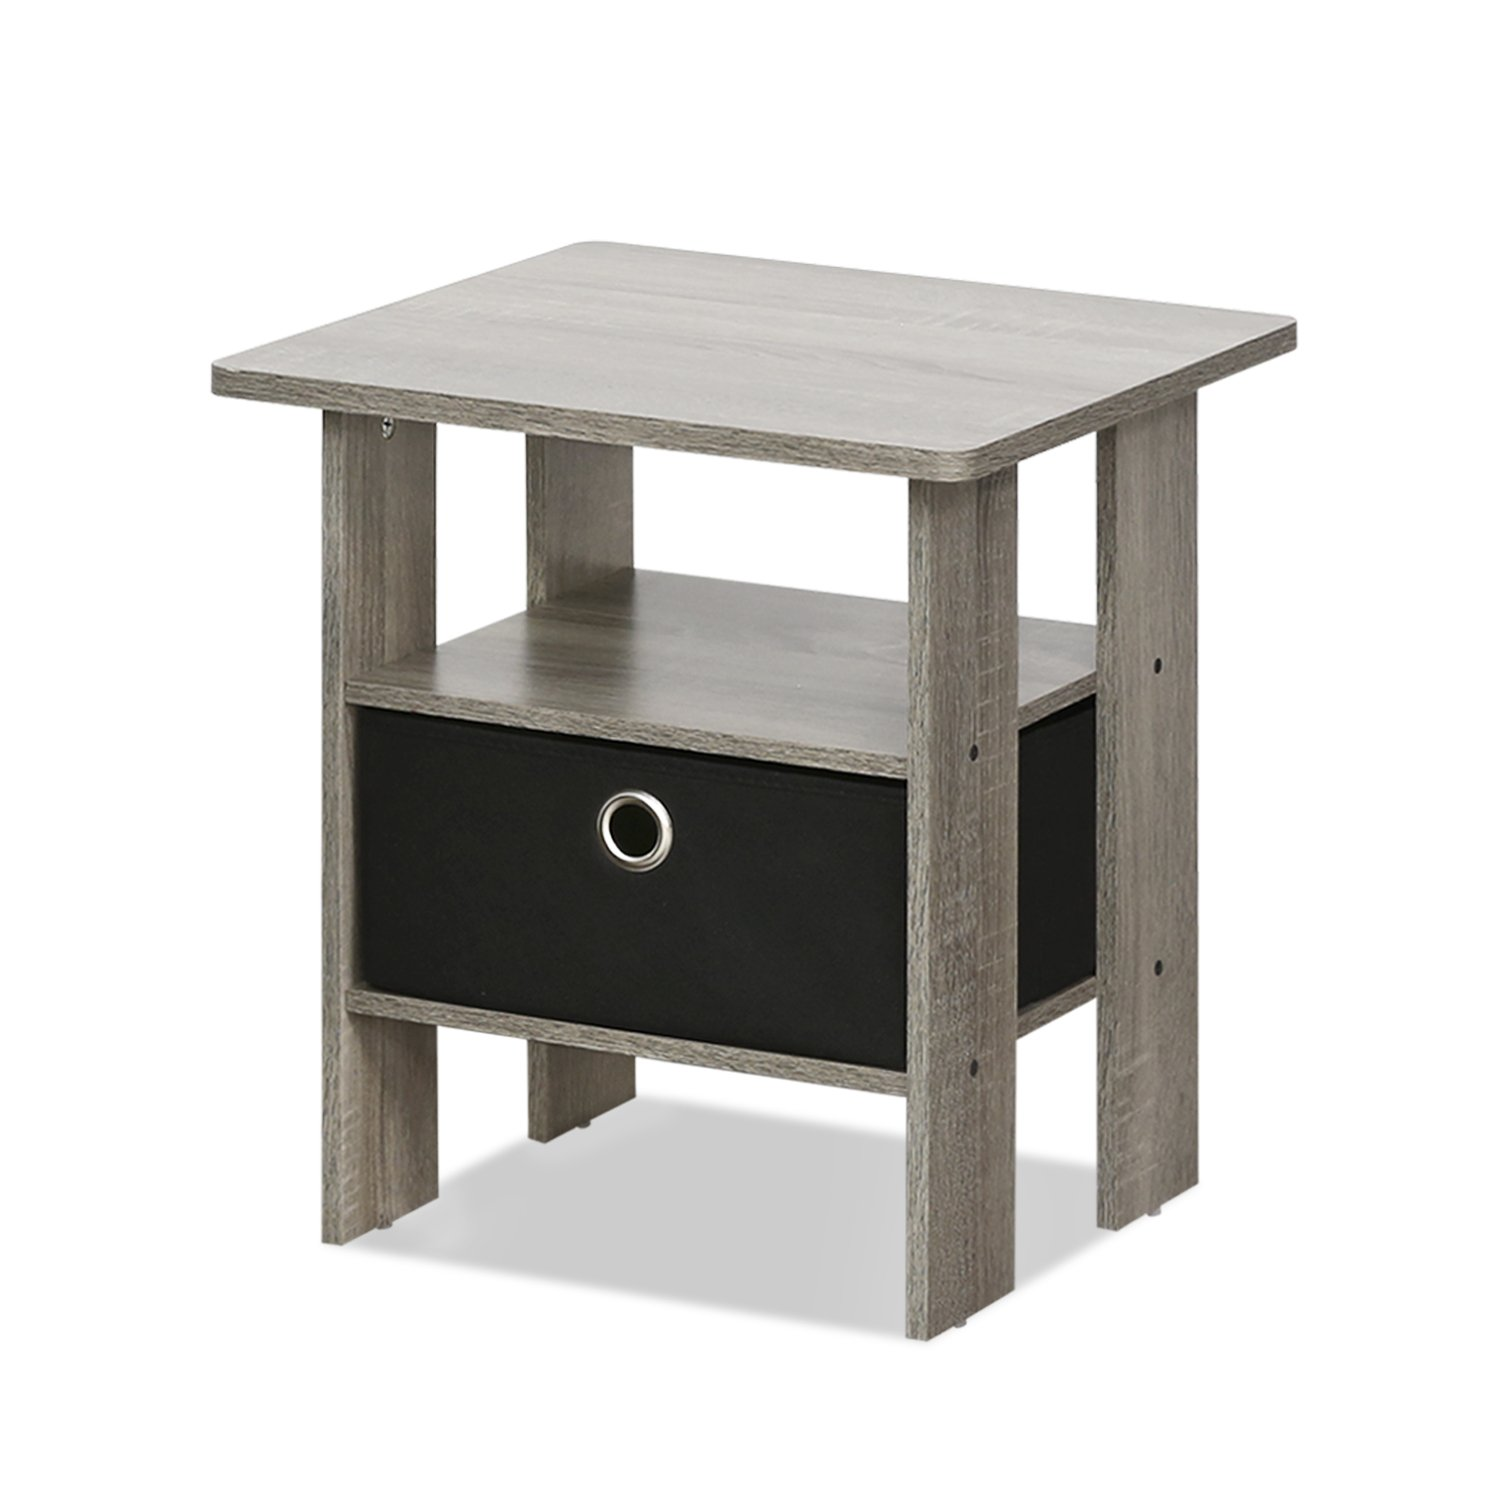 furinno night stand end table french oak storage accent black room essentials grey kitchen dining white rug home goods curtains inch wide sofa counter height with chairs breakfast